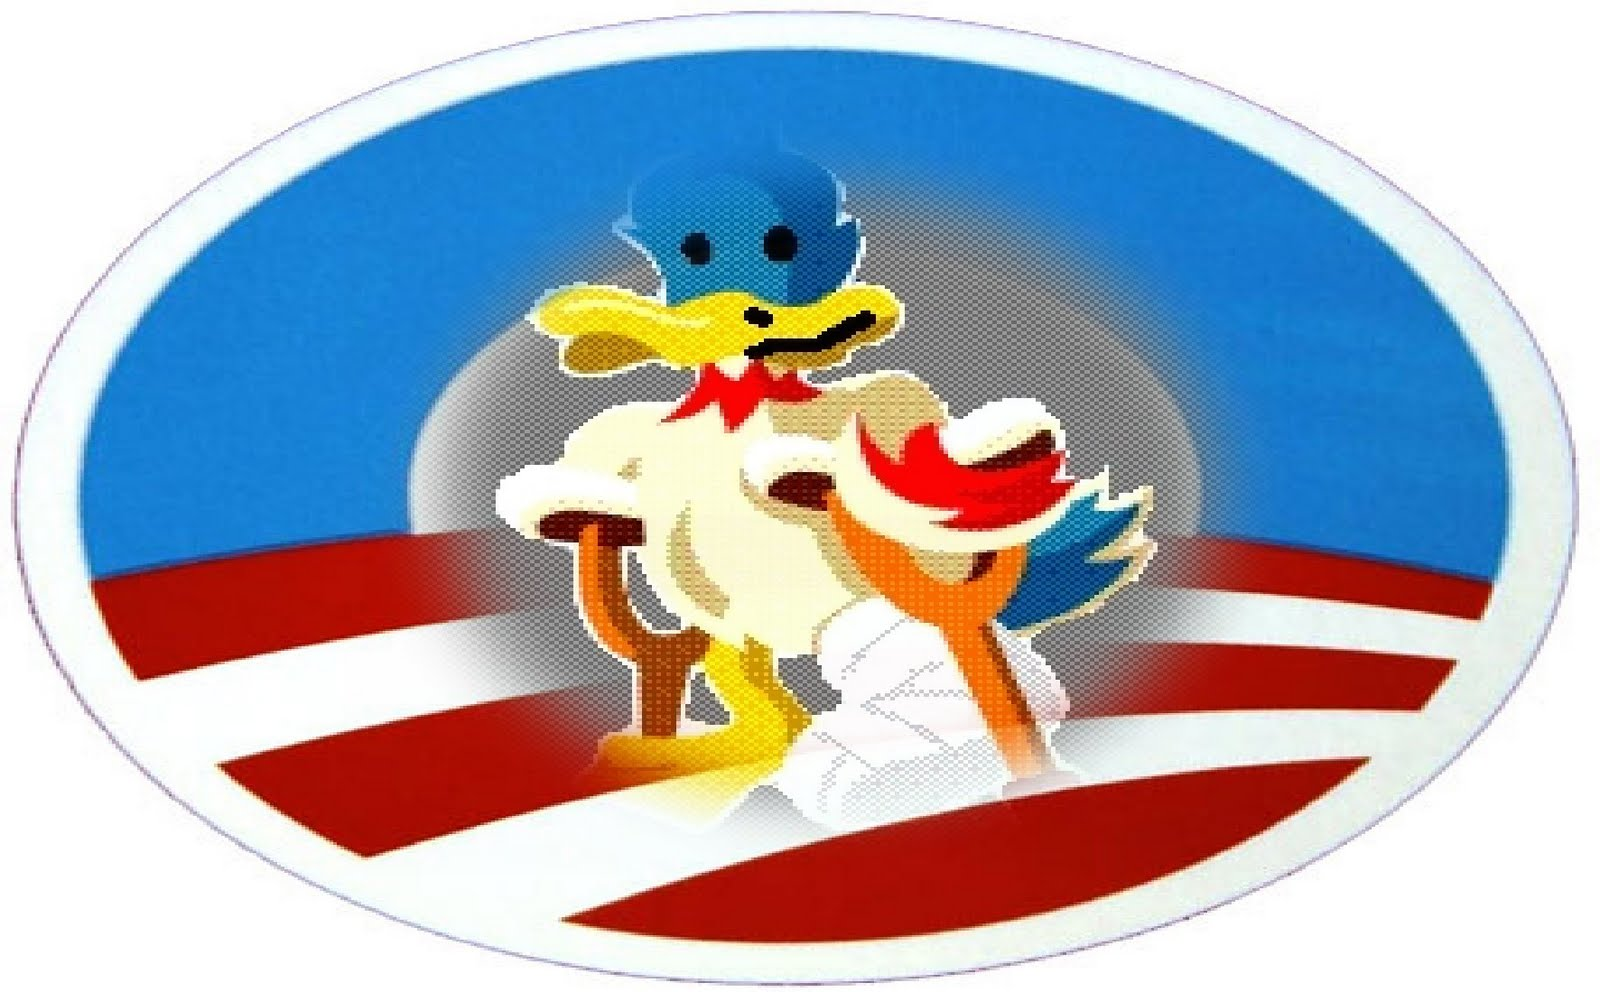 Obama as Lame Duck